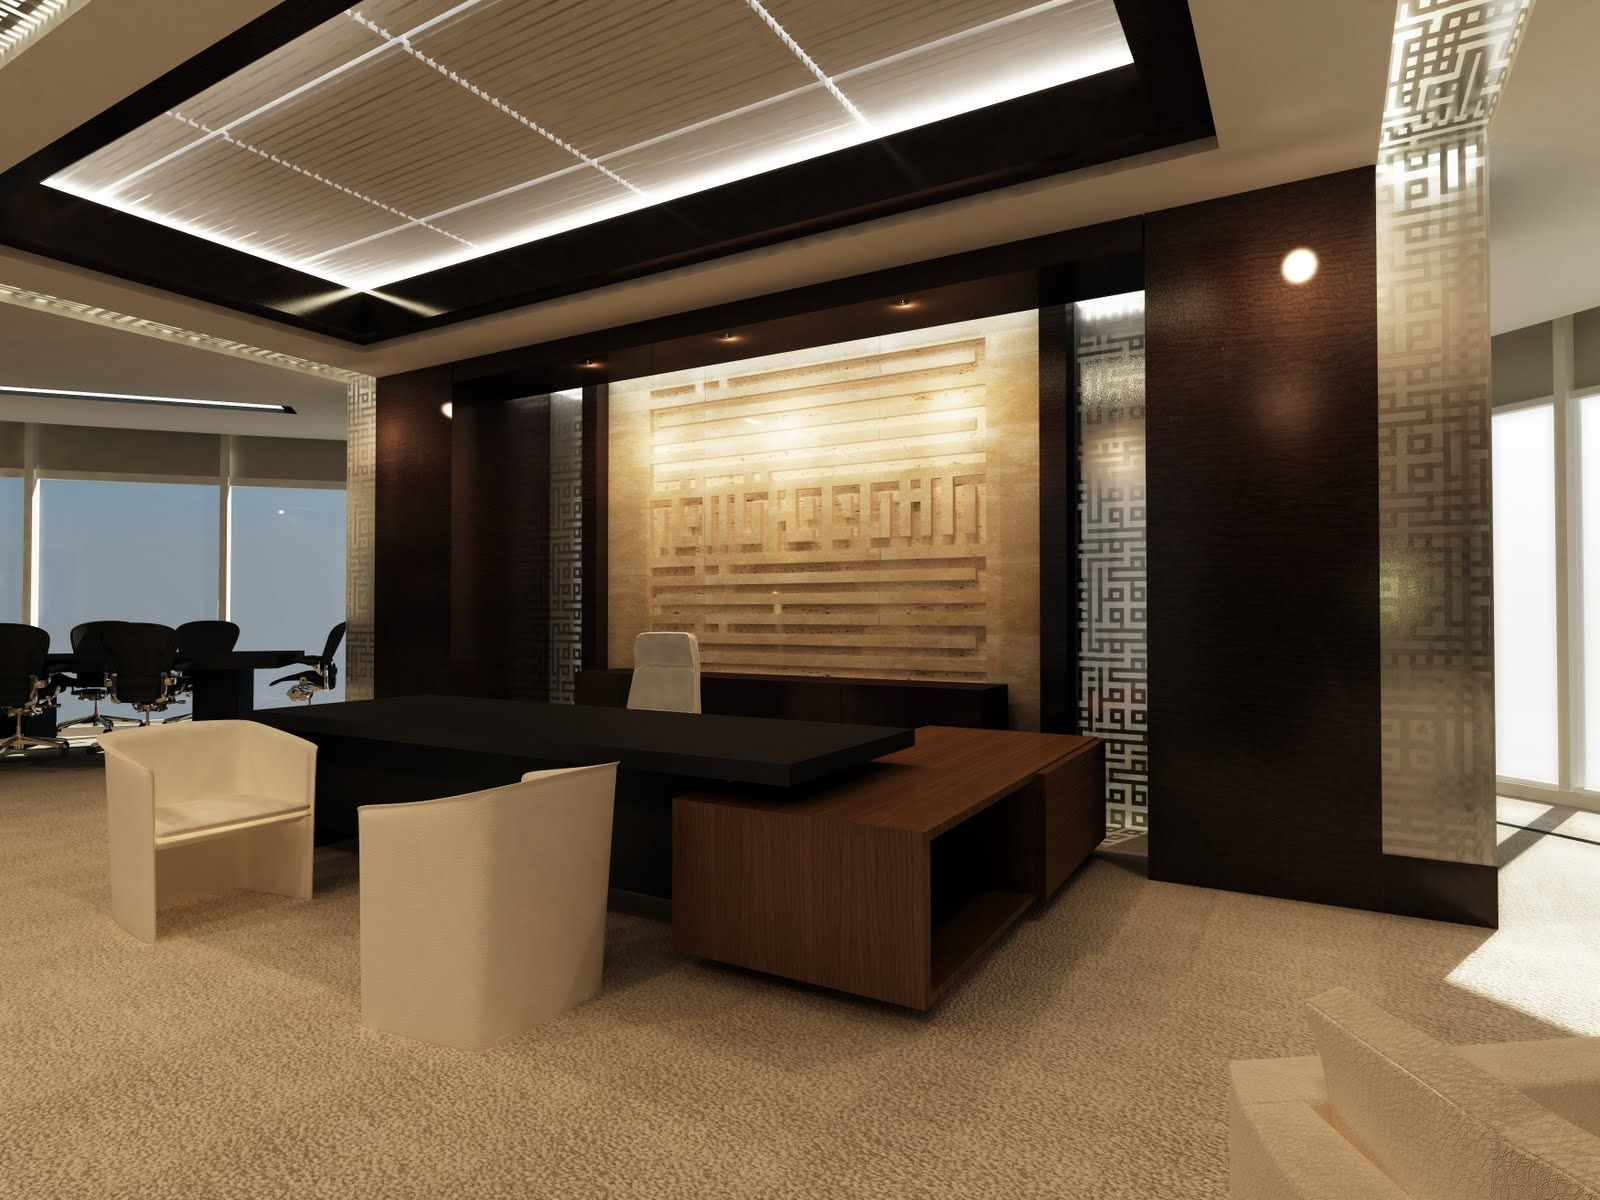 Office interior design intended for office interior design for Beautiful modern office design